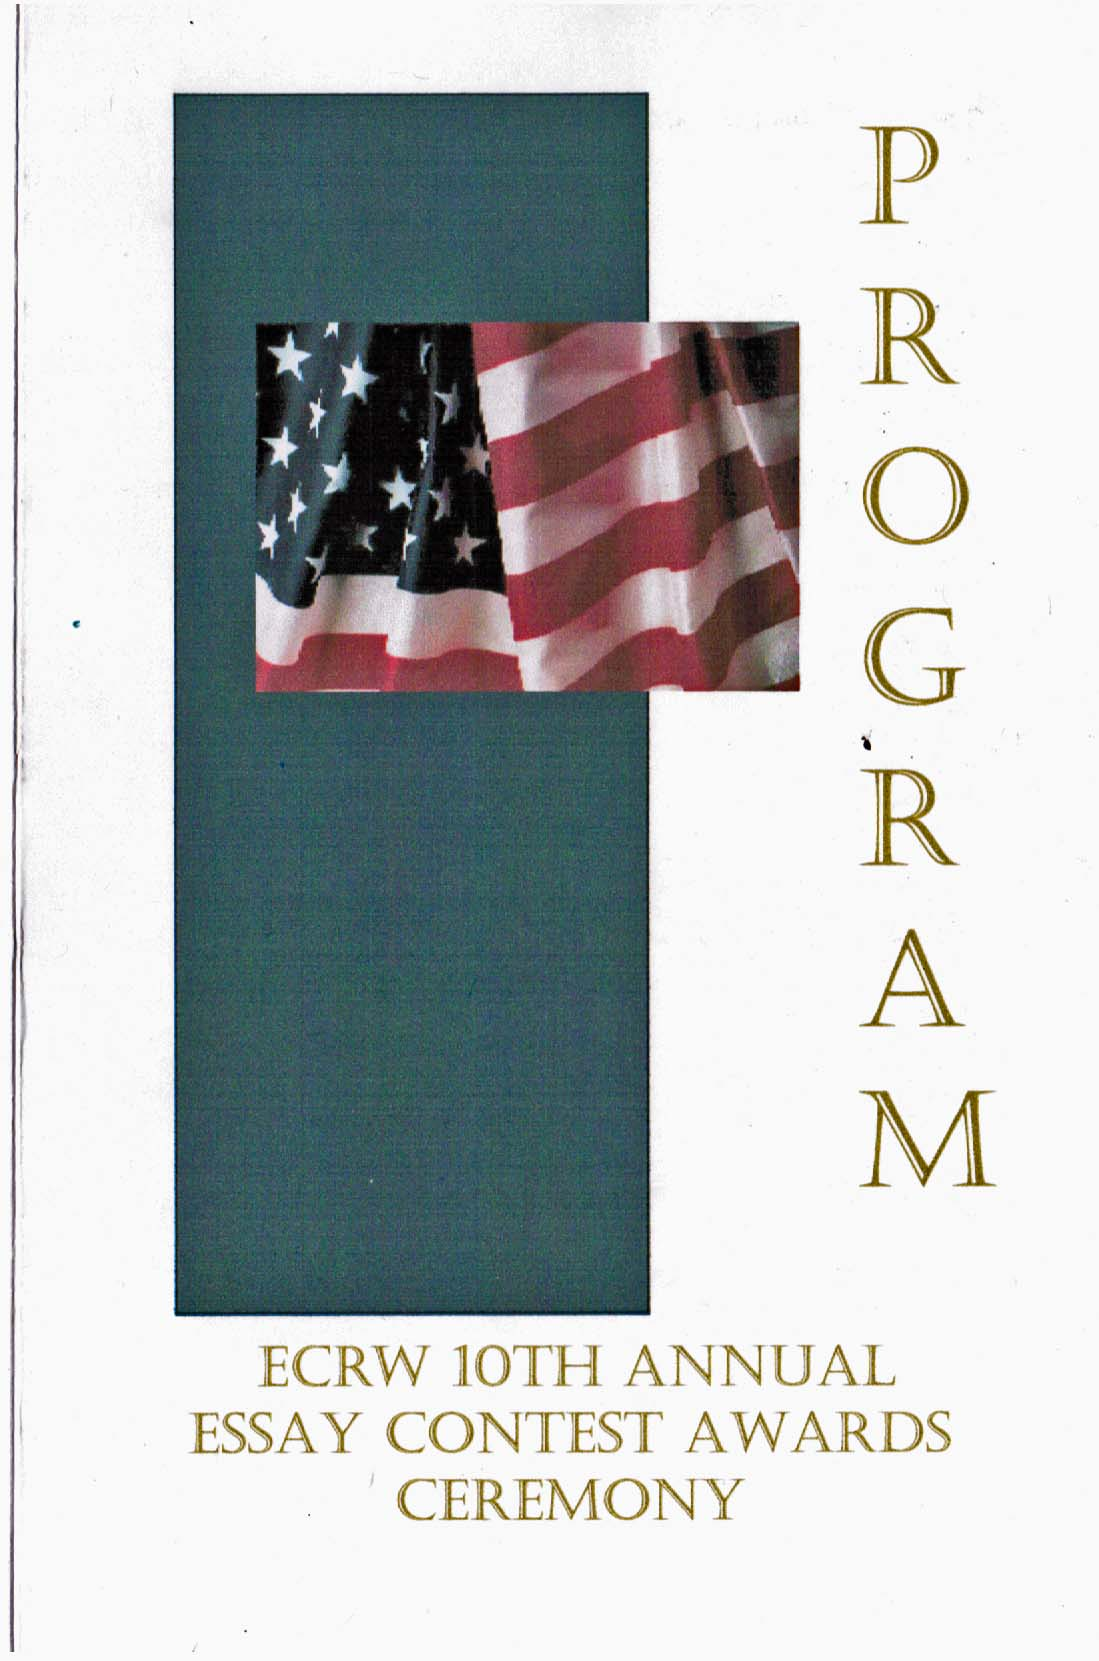 2011 ECRW Essay Contest Program Cover